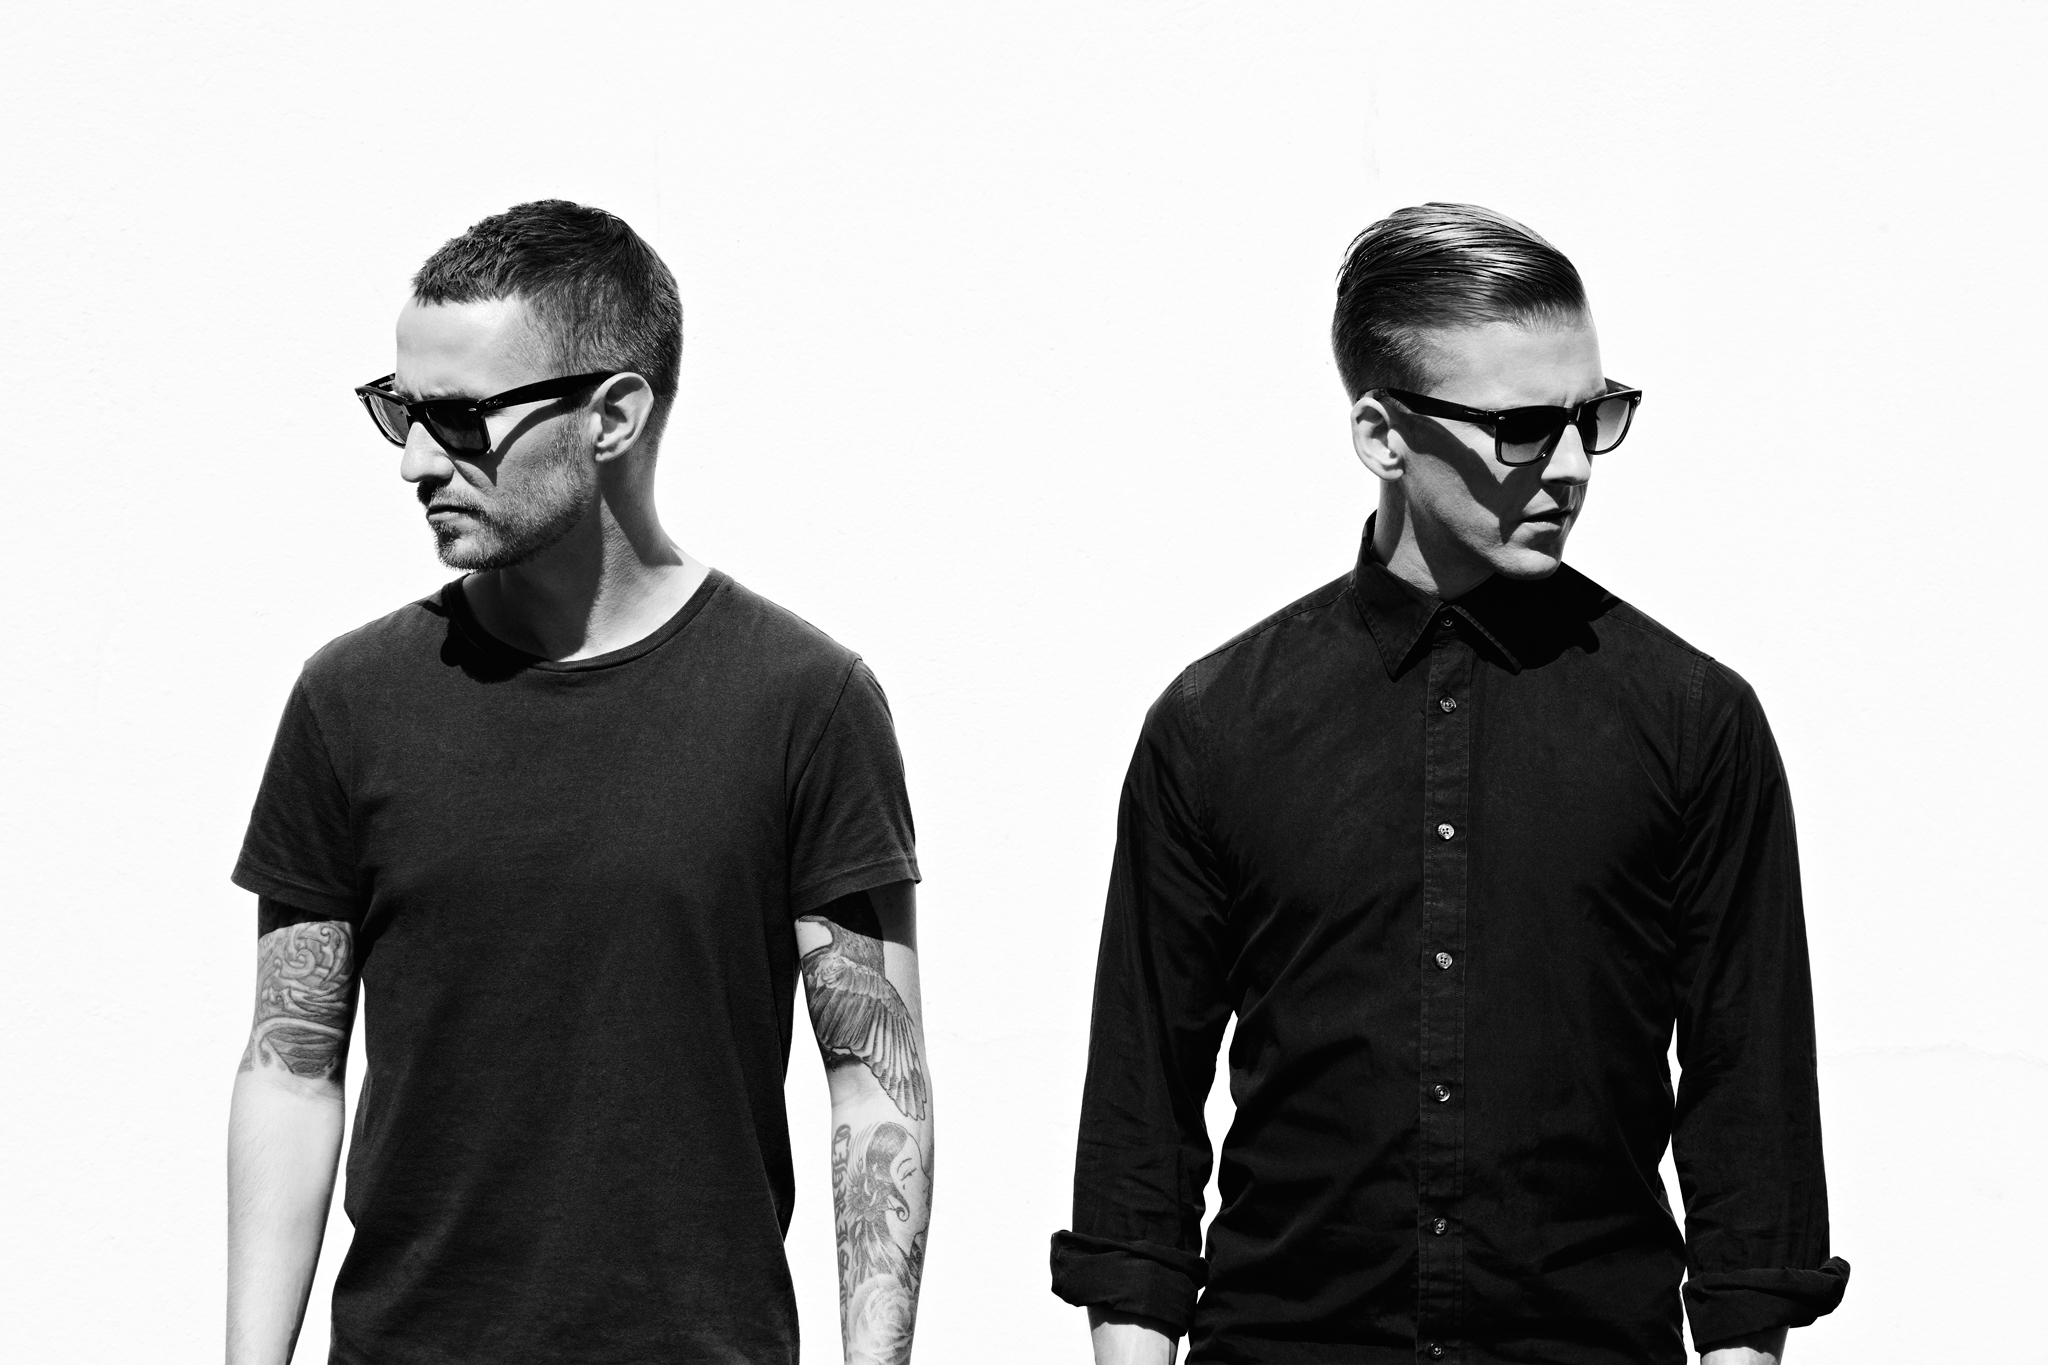 Christian Karlsson and Linus Eklöw of Galantis